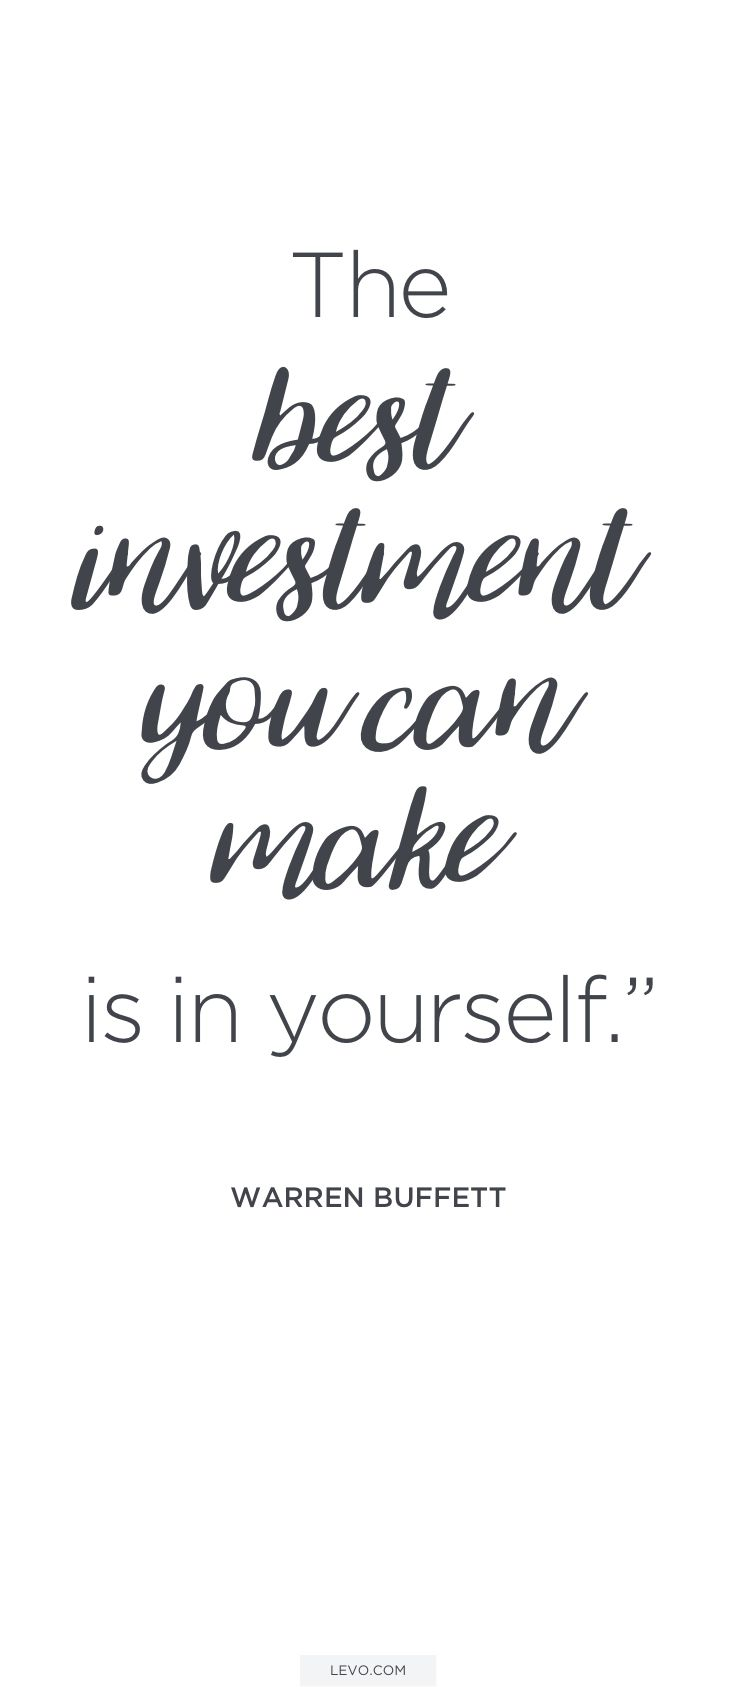 Best investment is yourself ca county home investment yolo